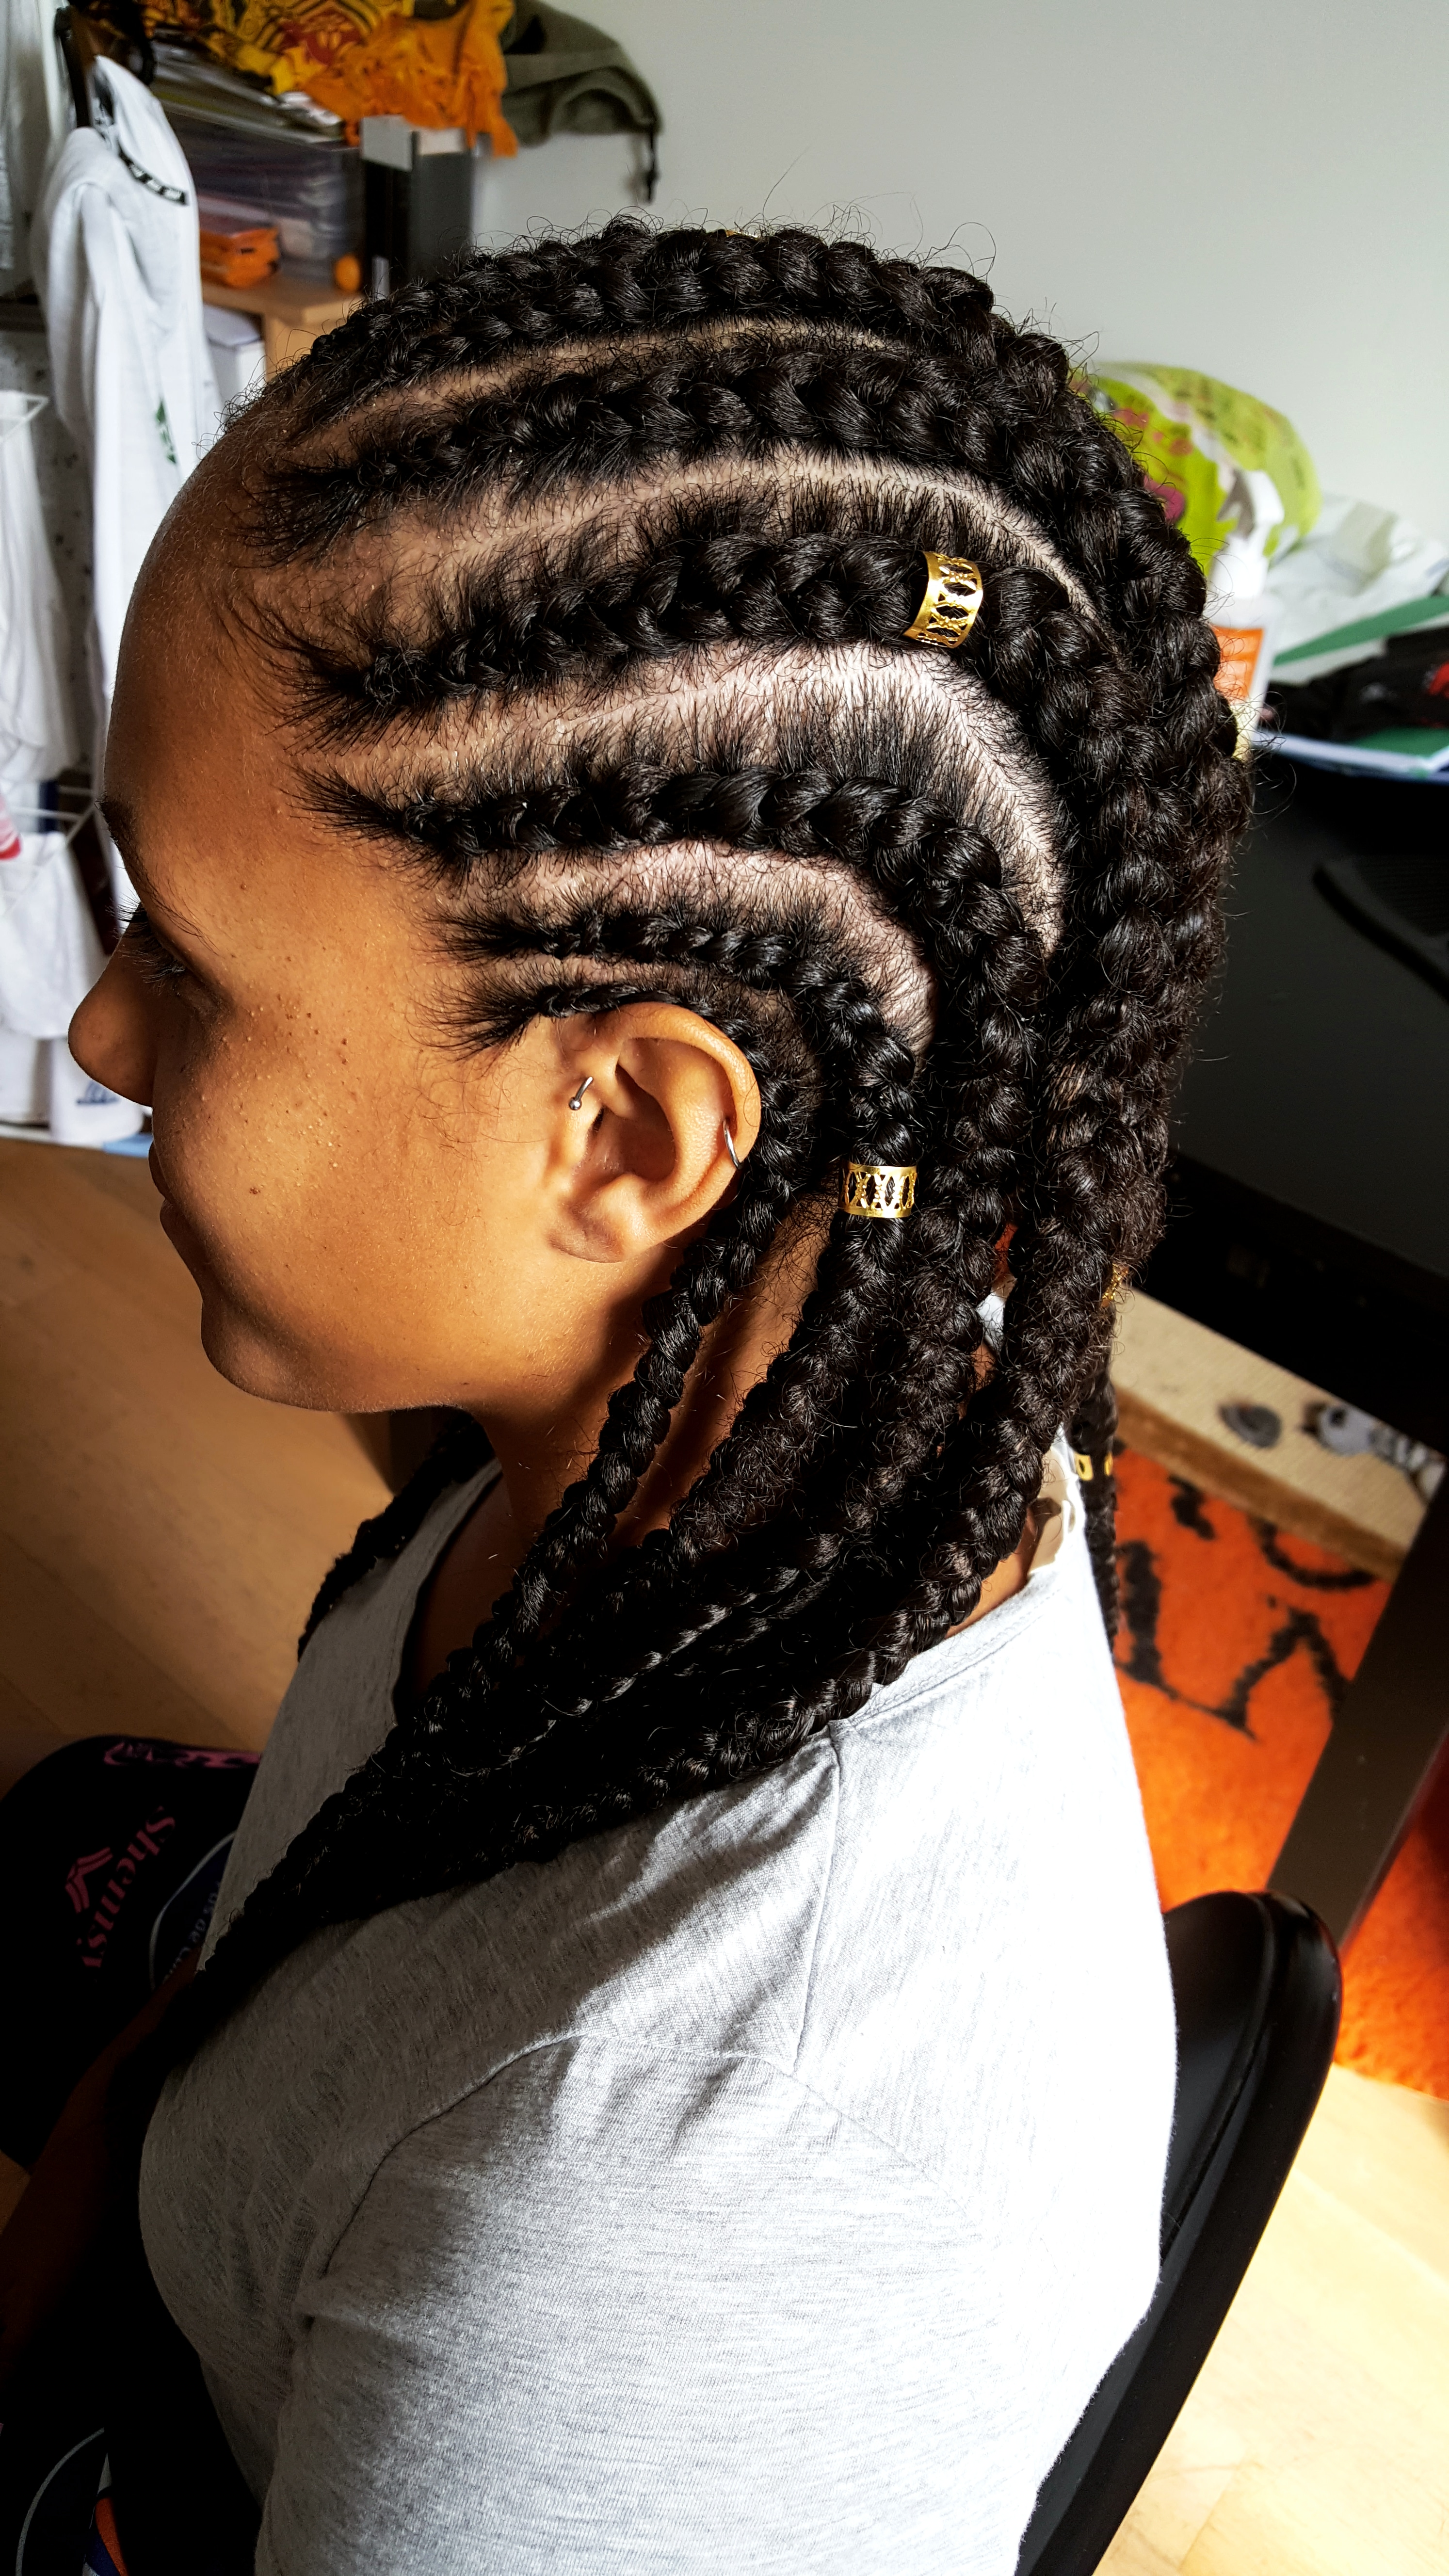 salon de coiffure afro tresse tresses box braids crochet braids vanilles tissages paris 75 77 78 91 92 93 94 95 WYTKTYOY